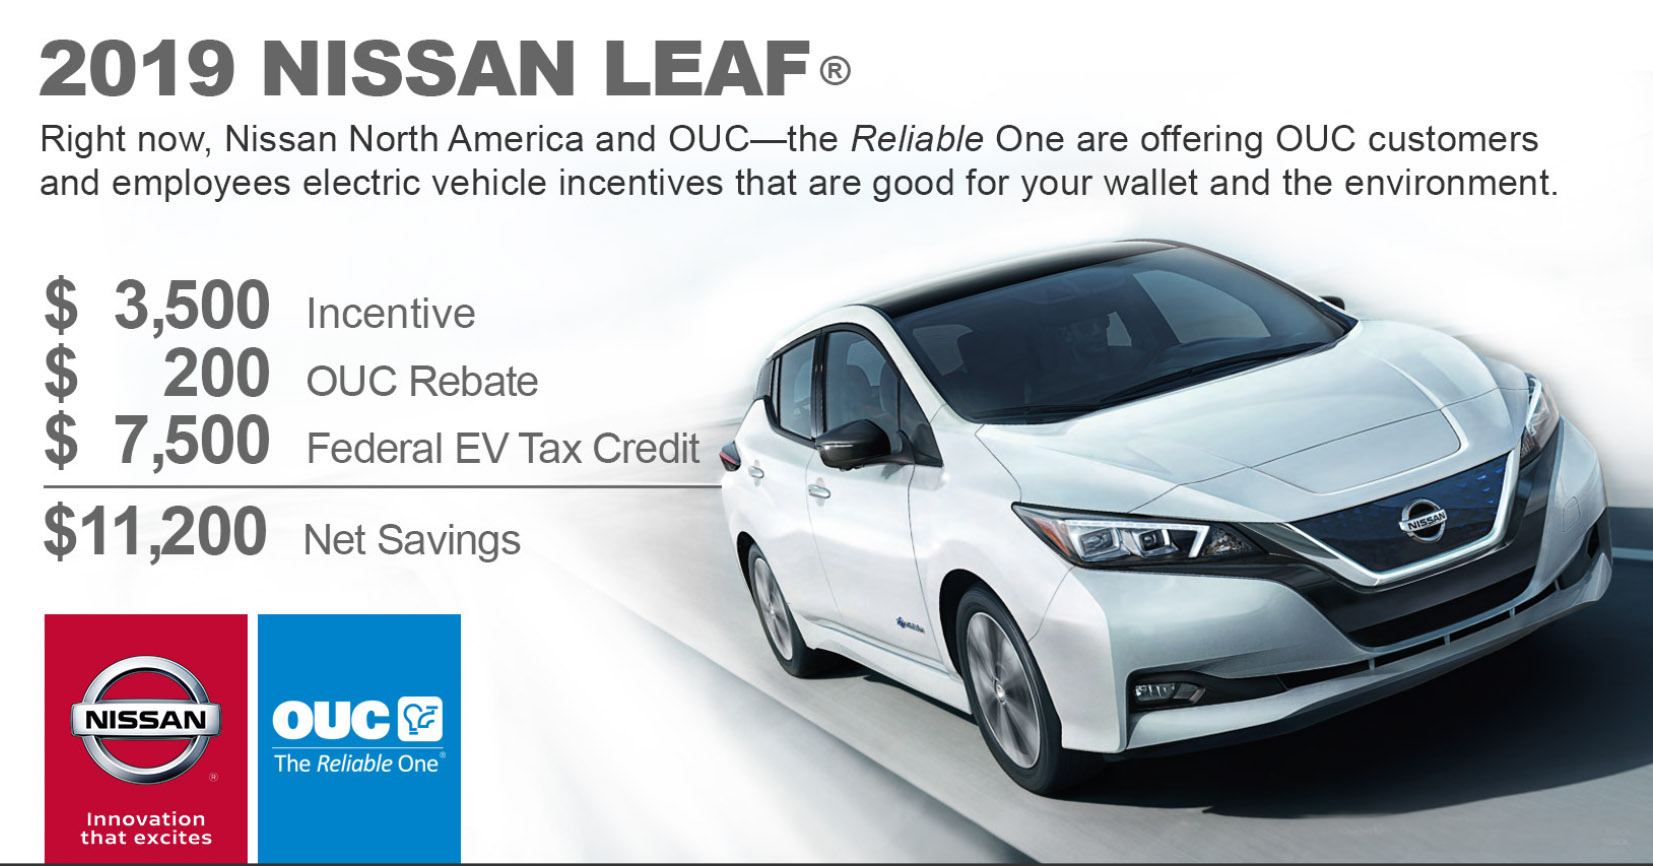 Right Now Nissan North America And Ouc The Reliable One Are Offering Customers Employees Electric Vehicle Incentives That Good For Your Wallet